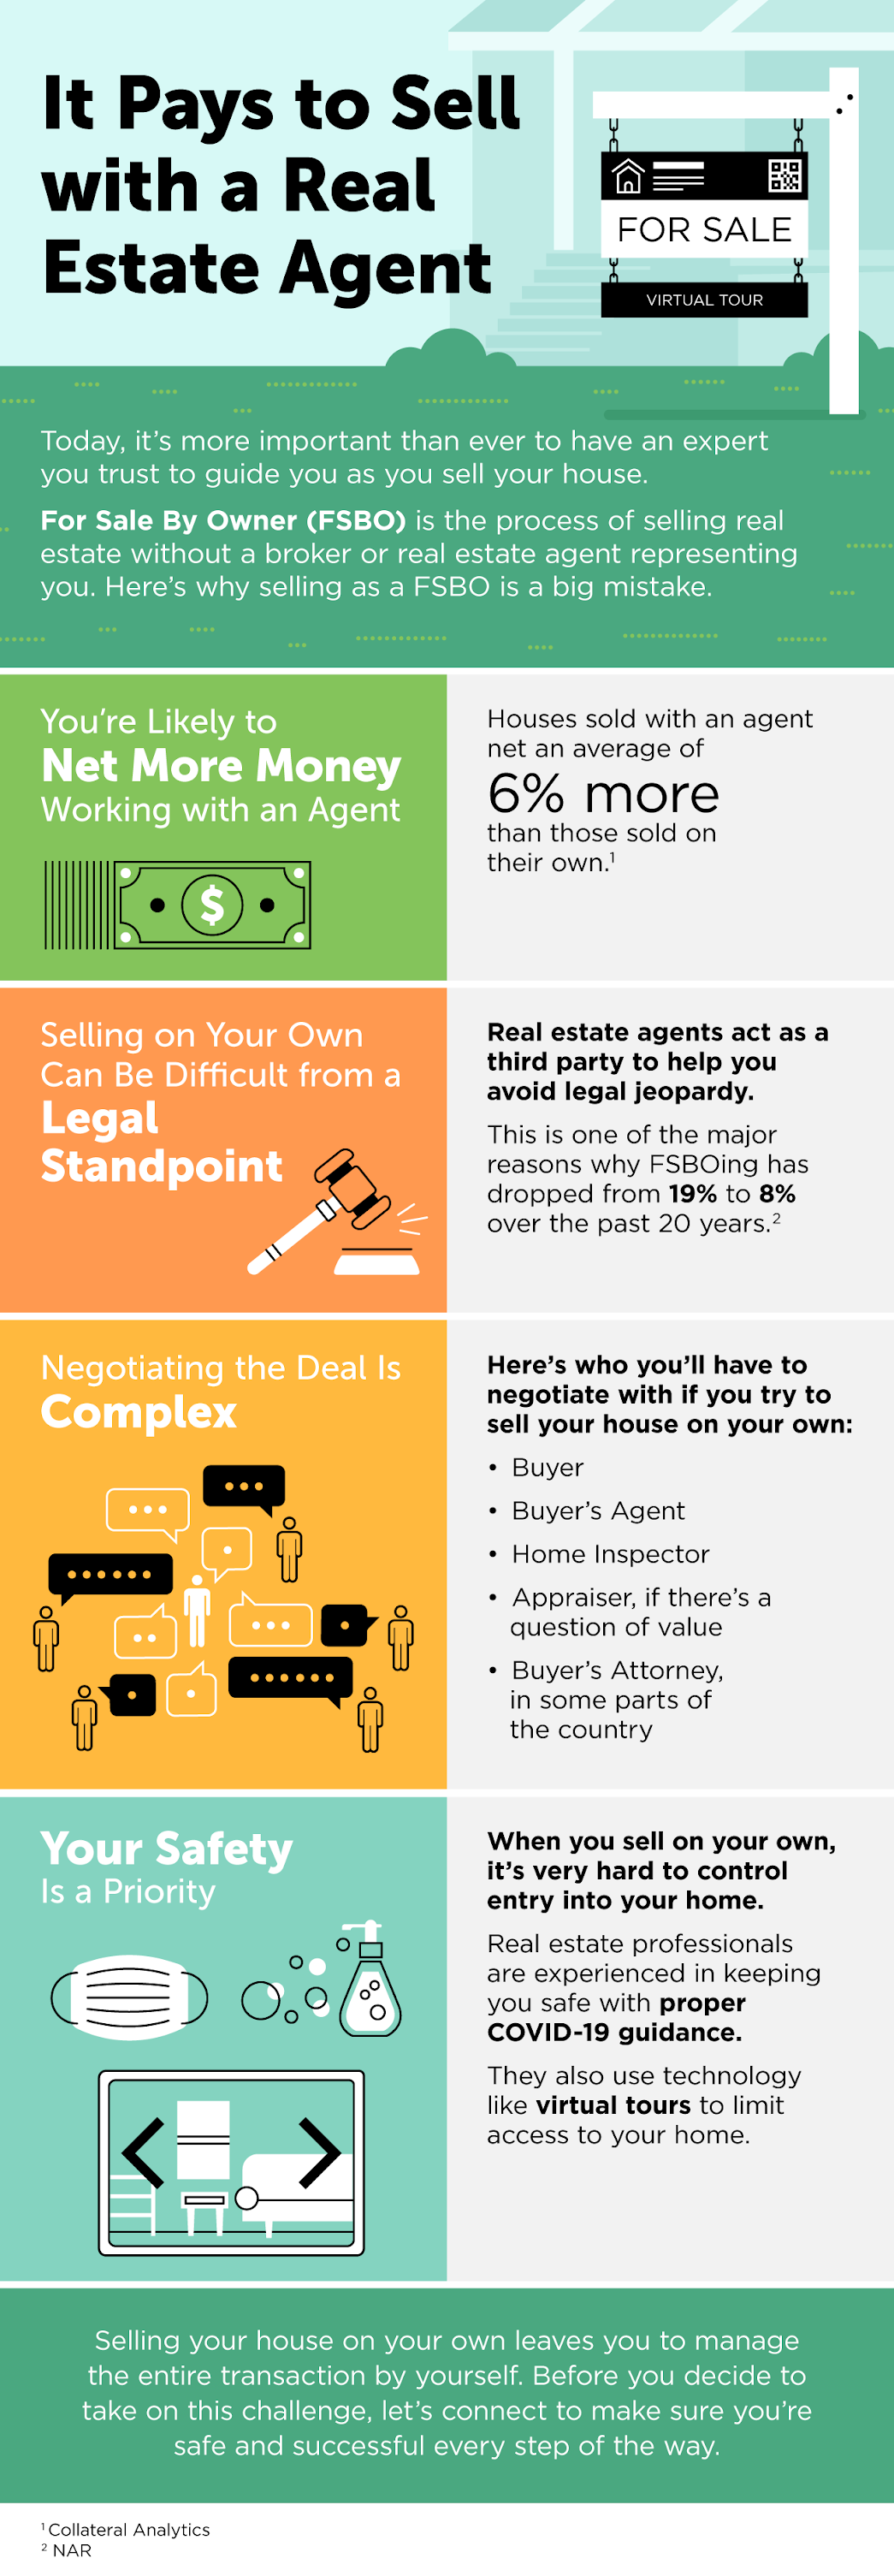 Why Sell with a Real Estate Agent